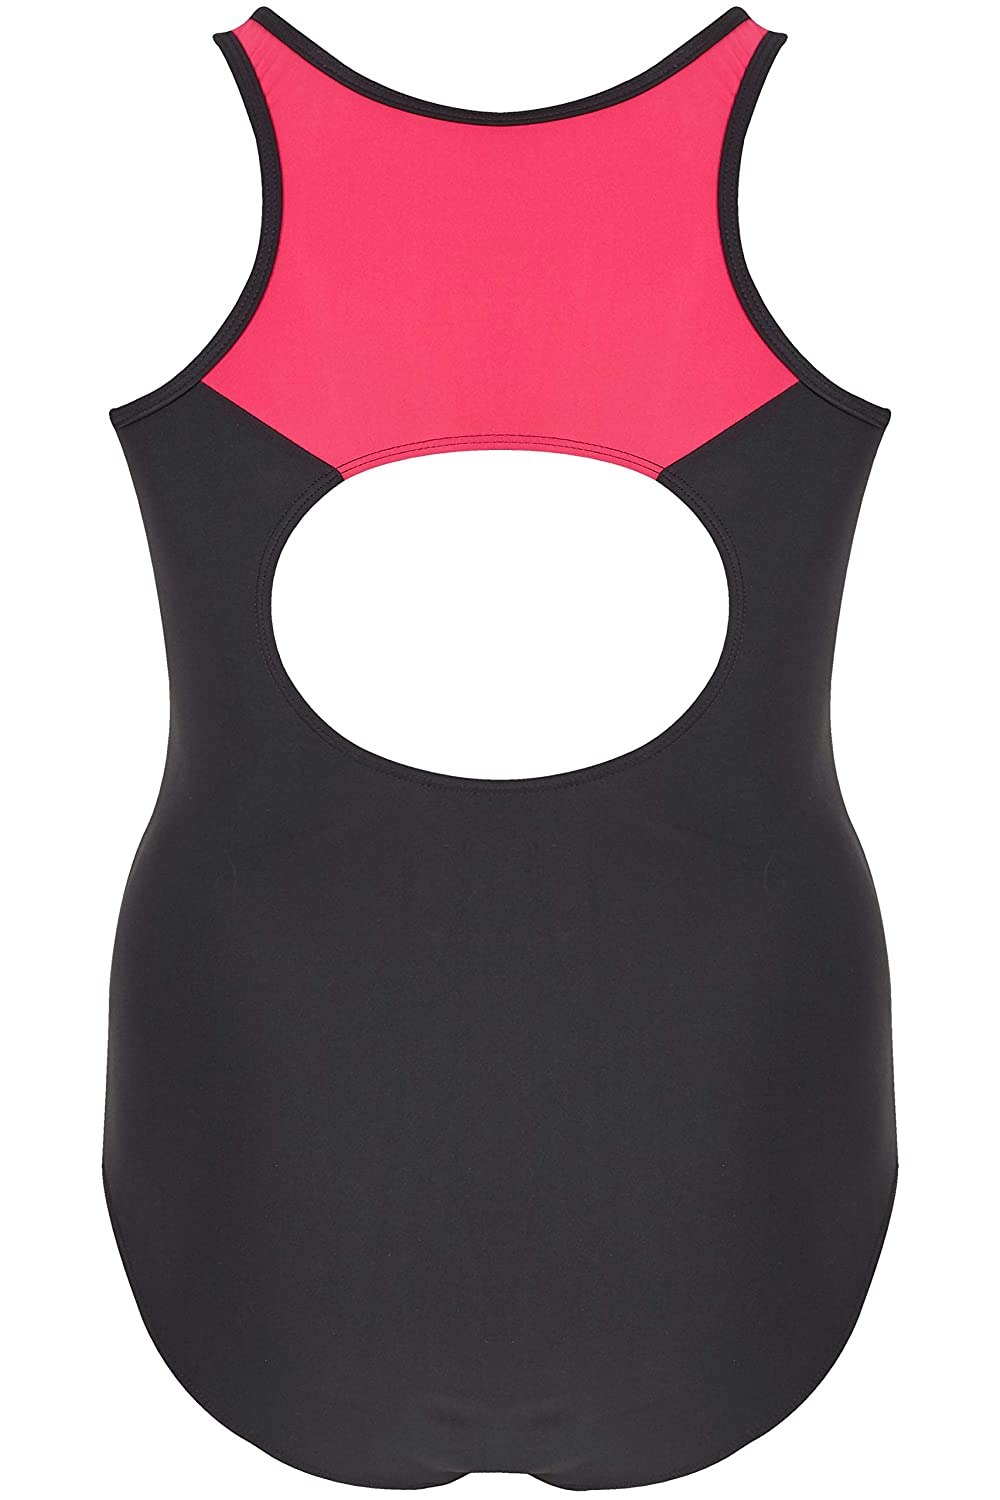 Yours Clothing Womens Contrast Contour Swimsuit